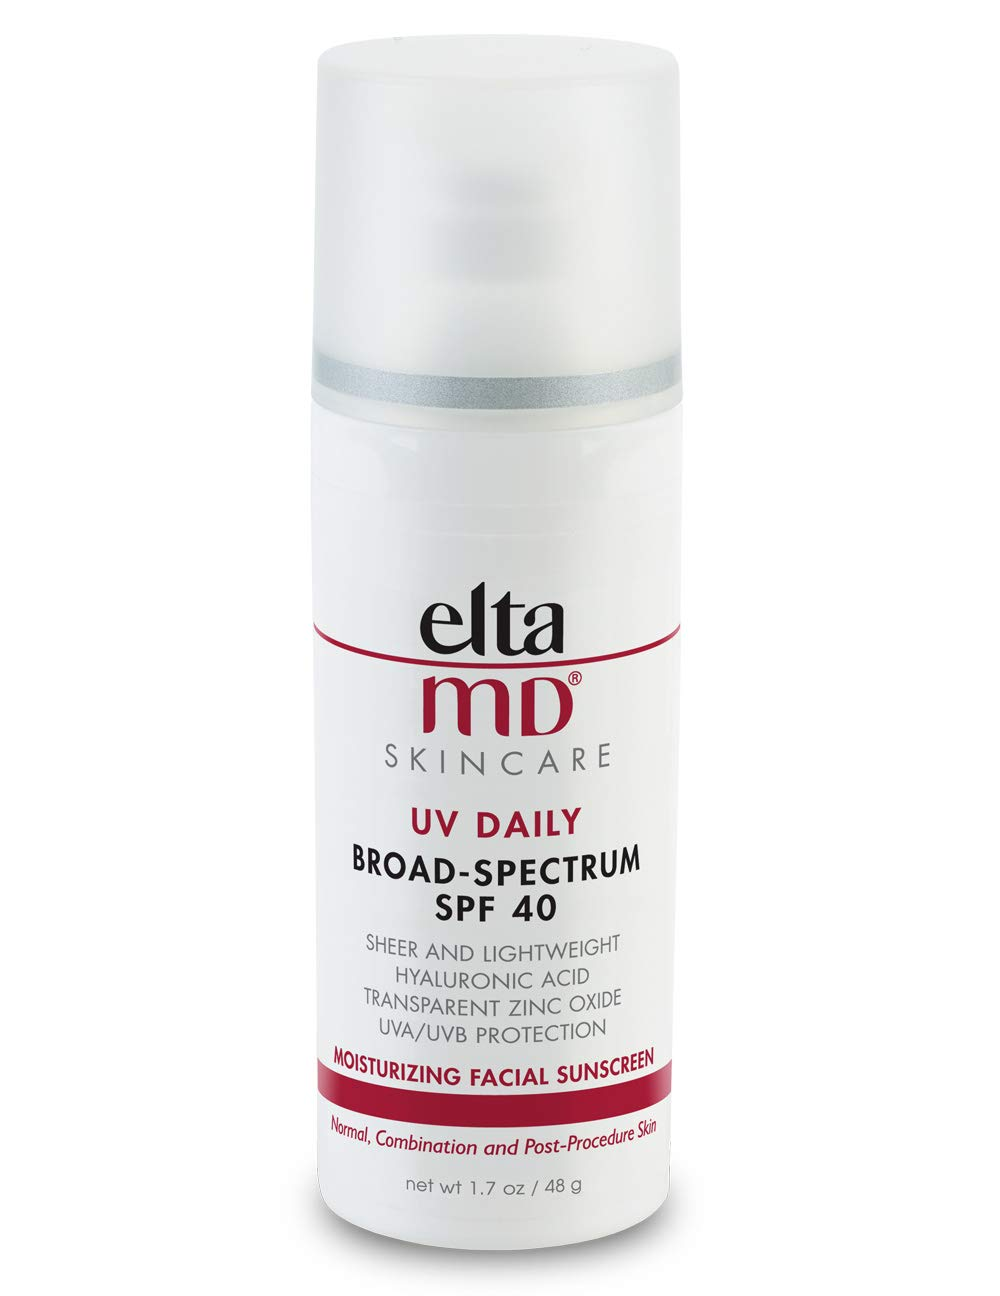 EltaMD UV Daily Facial Sunscreen Broad-Spectrum SPF 40 for Normal and Combination Skin, 1. 7 oz